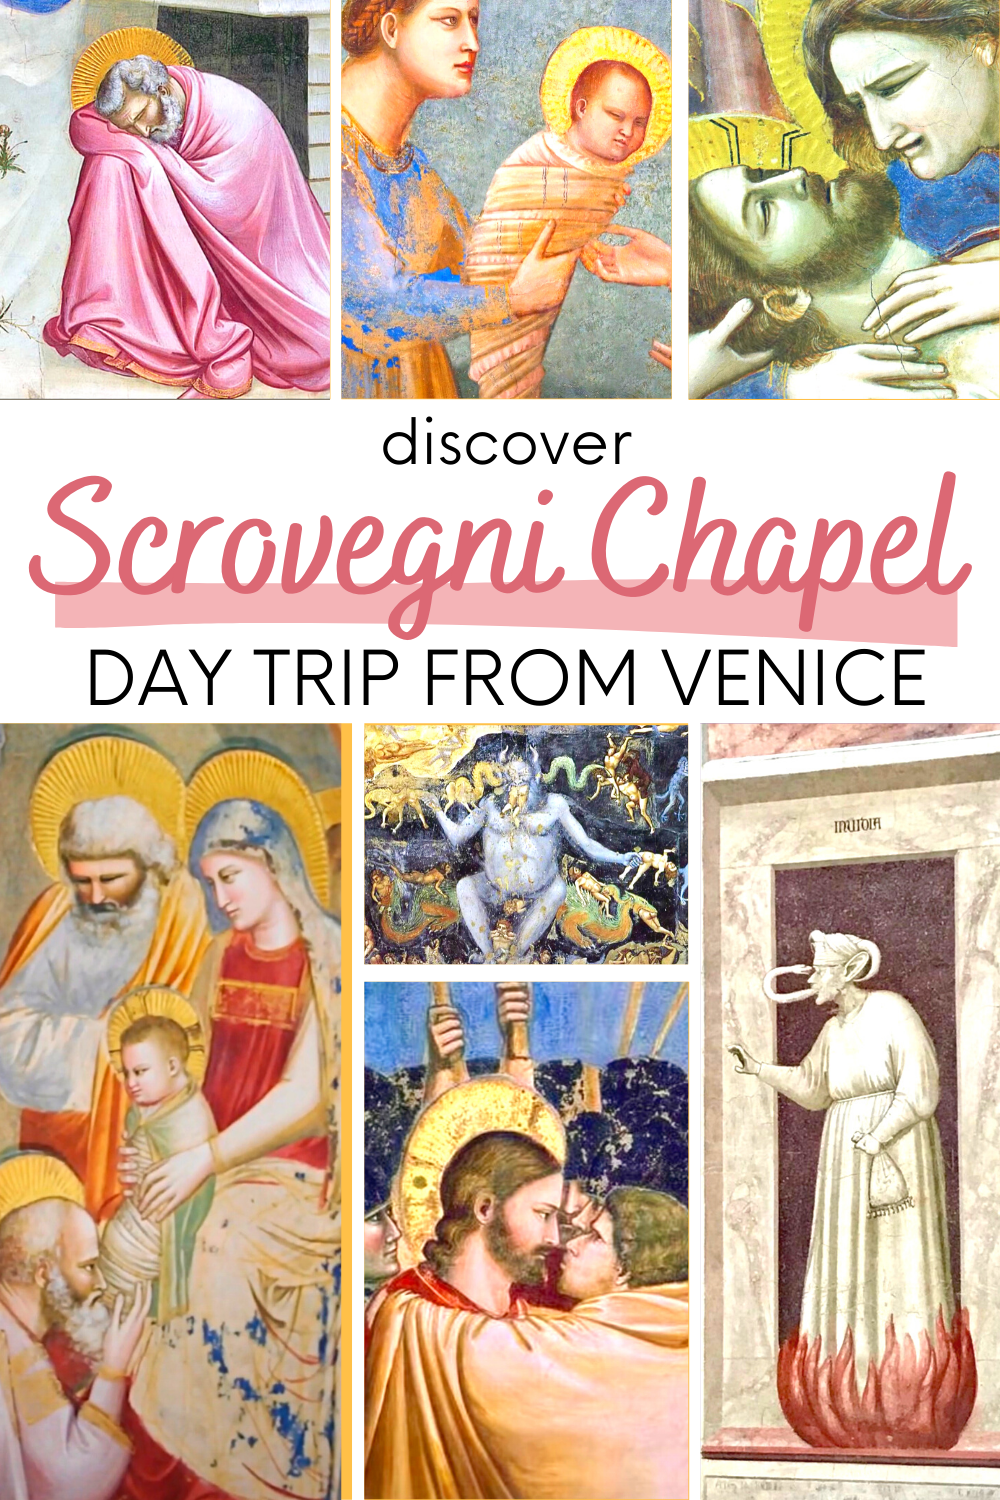 Complete Guide To Visiting the Scrovegni Chapel, Giotto's Magnificent Masterpiece in Padua Italy